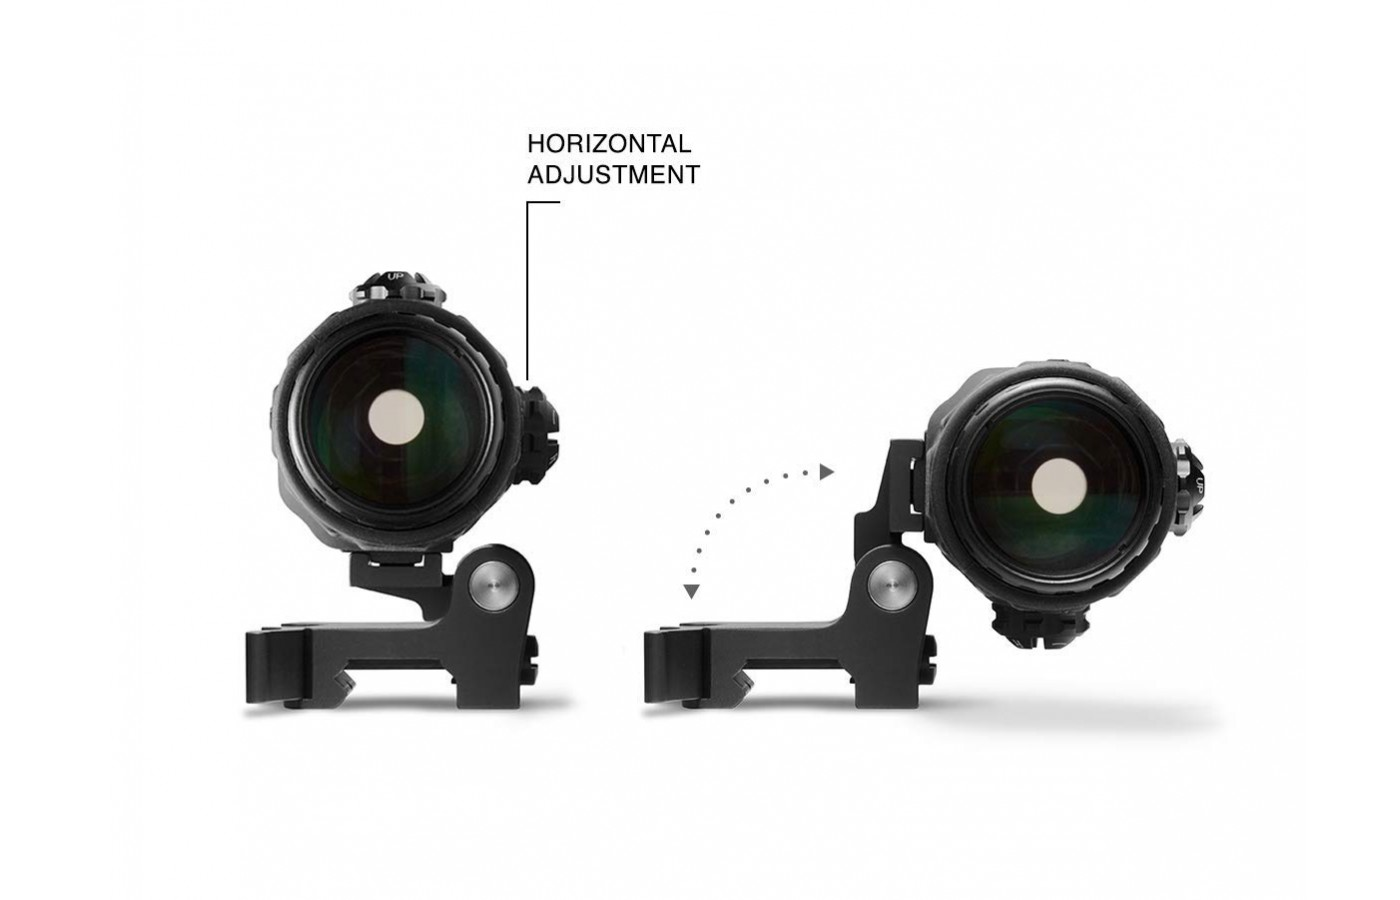 EOTech G33 has the switch to side mount feature